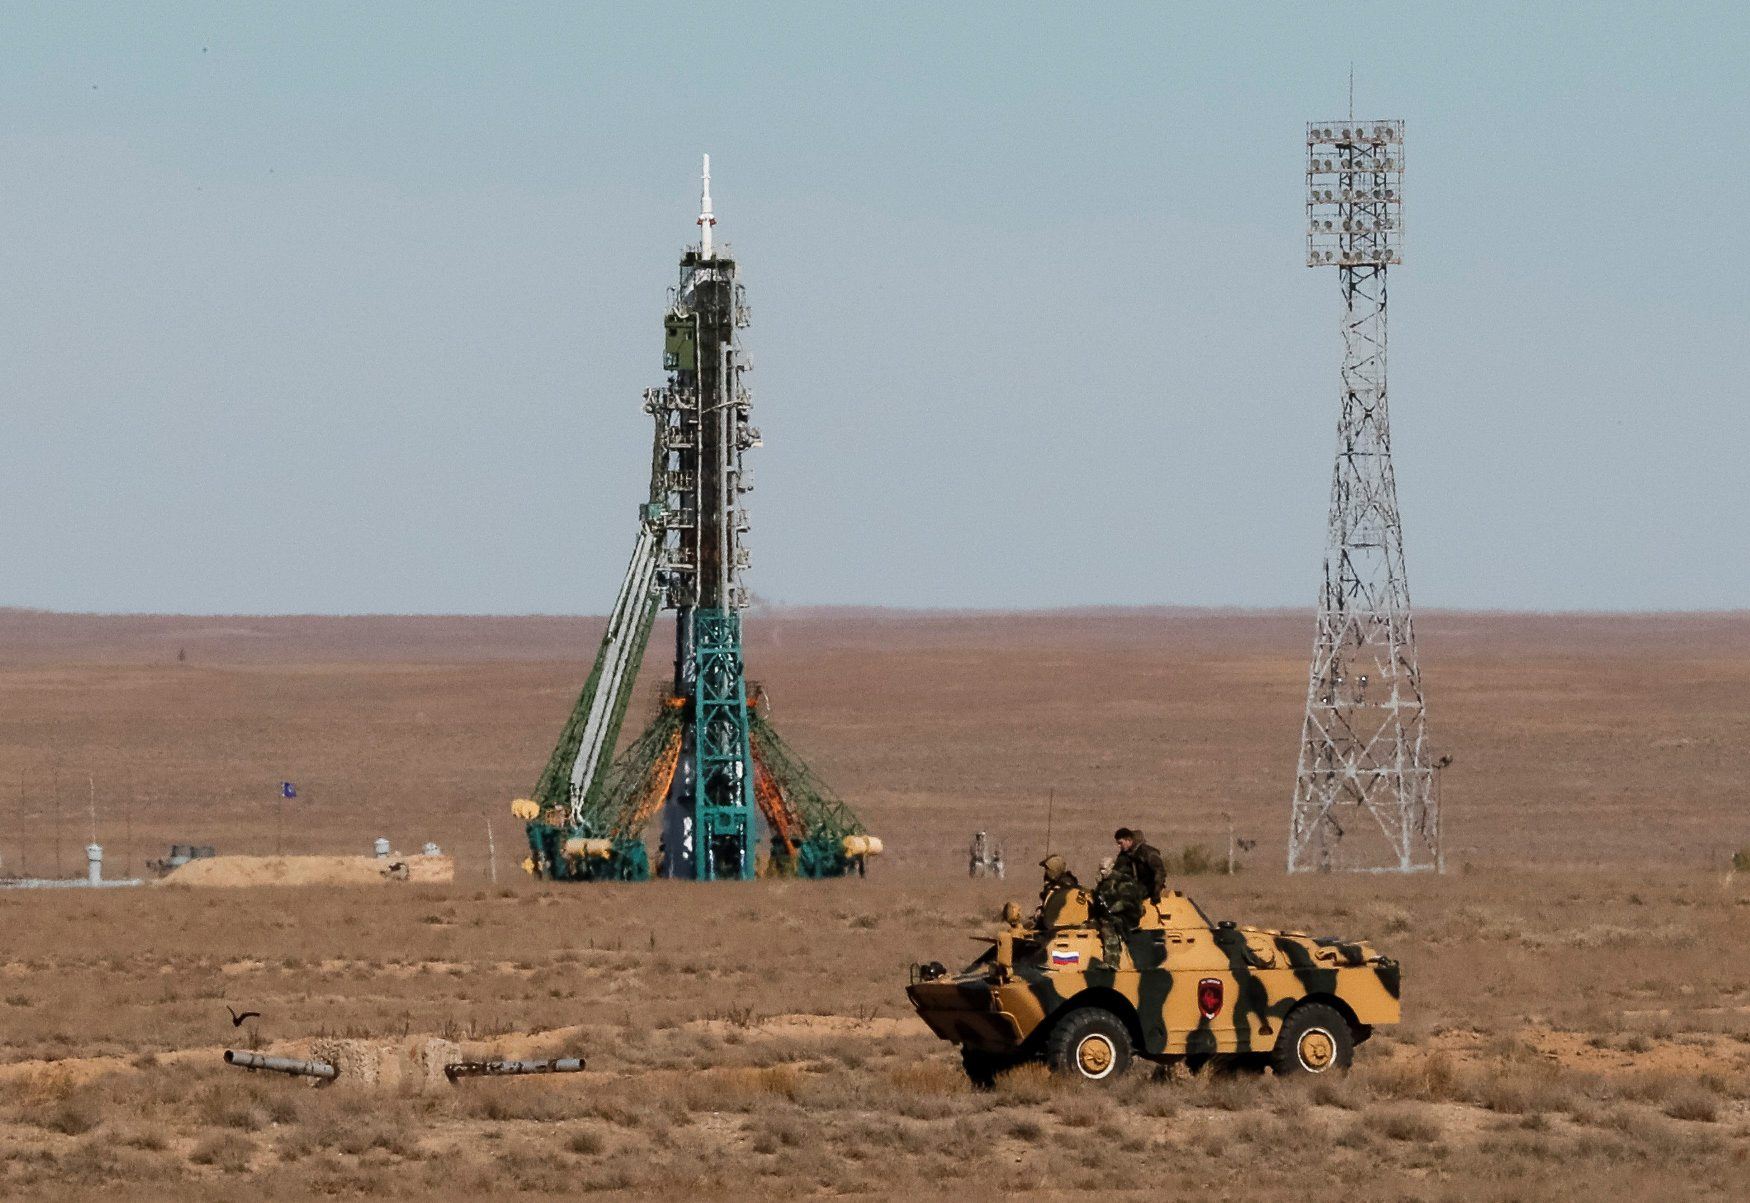 2018-10-11T083628Z_1406968848_RC1C23EEFF90_RTRMADP_3_SPACE-STATION-LAUNCH